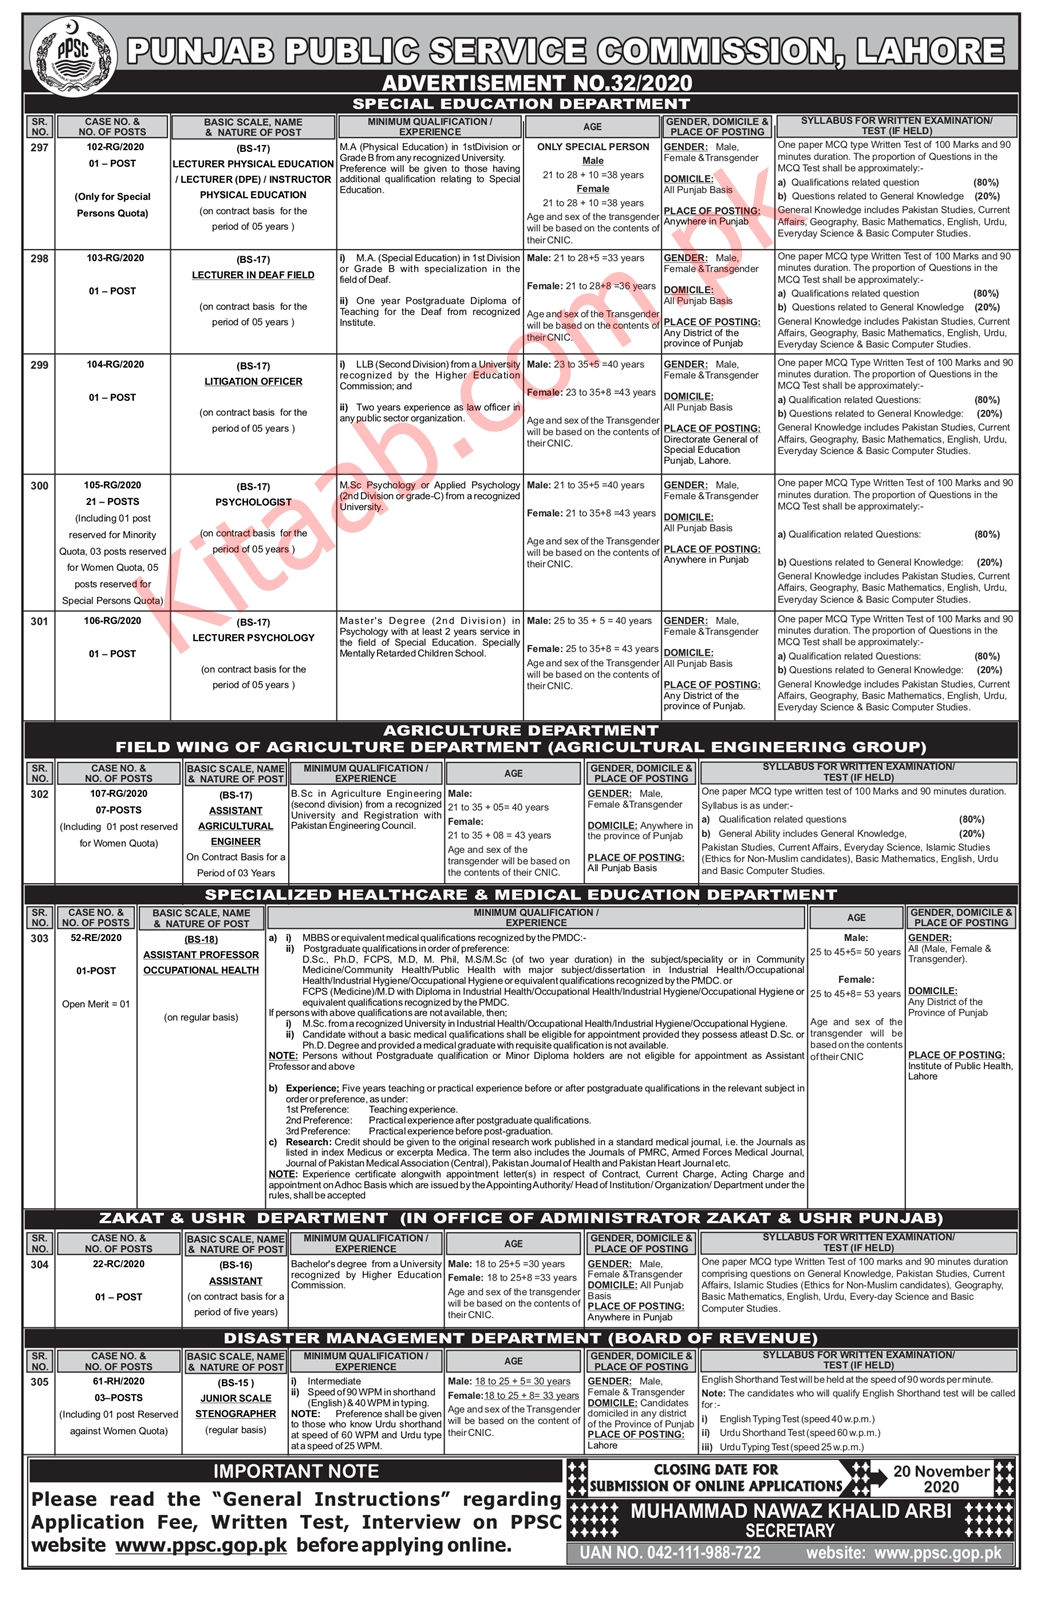 PPSC Punjab Special Education Department Jobs 2021 Online Apply Eligibility Criteria